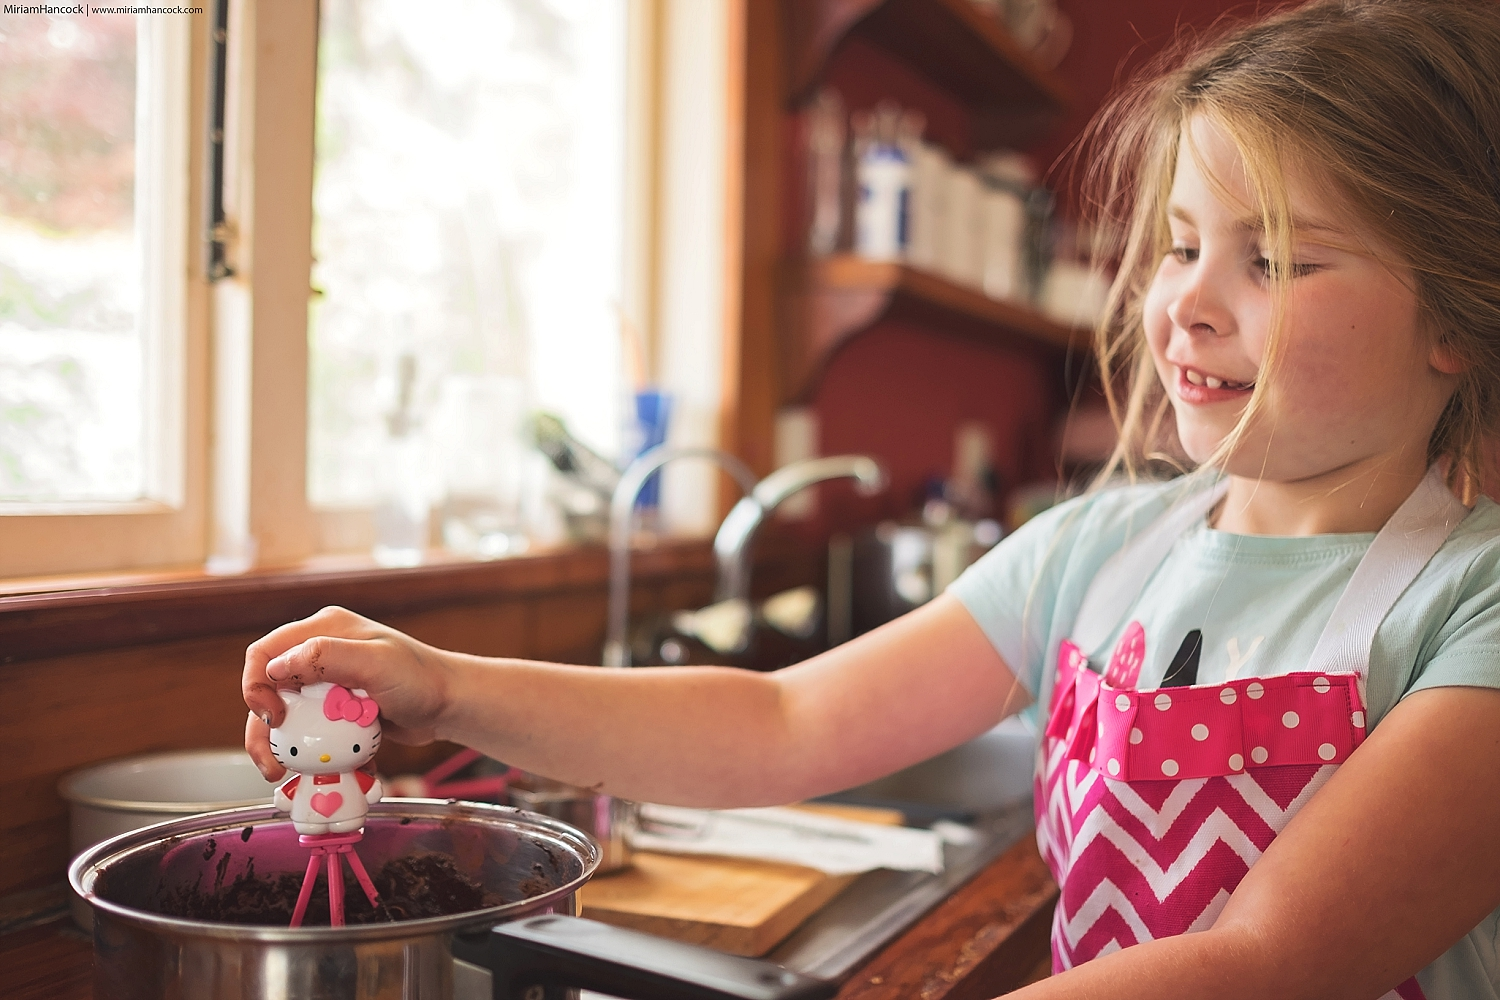 Still mixing everything together with her Hello Kitty whisk.